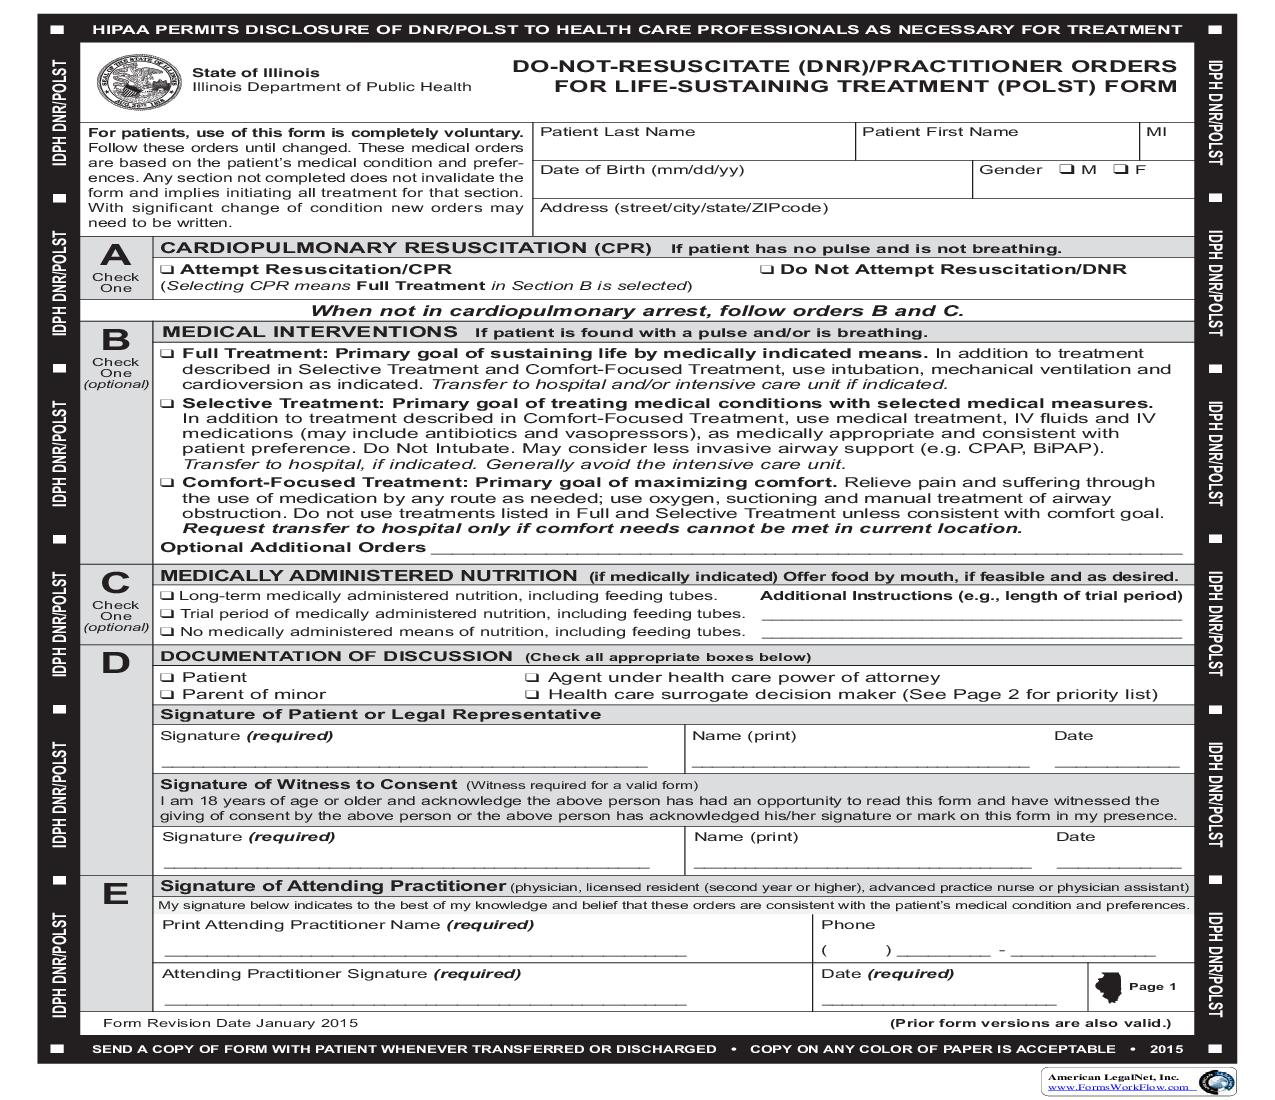 Do Not Resuscitate (DNR)   Practitioner Orders For Life Sustaining  Treatment (POLST) Form | Pdf Fpdf Doc Docx ...